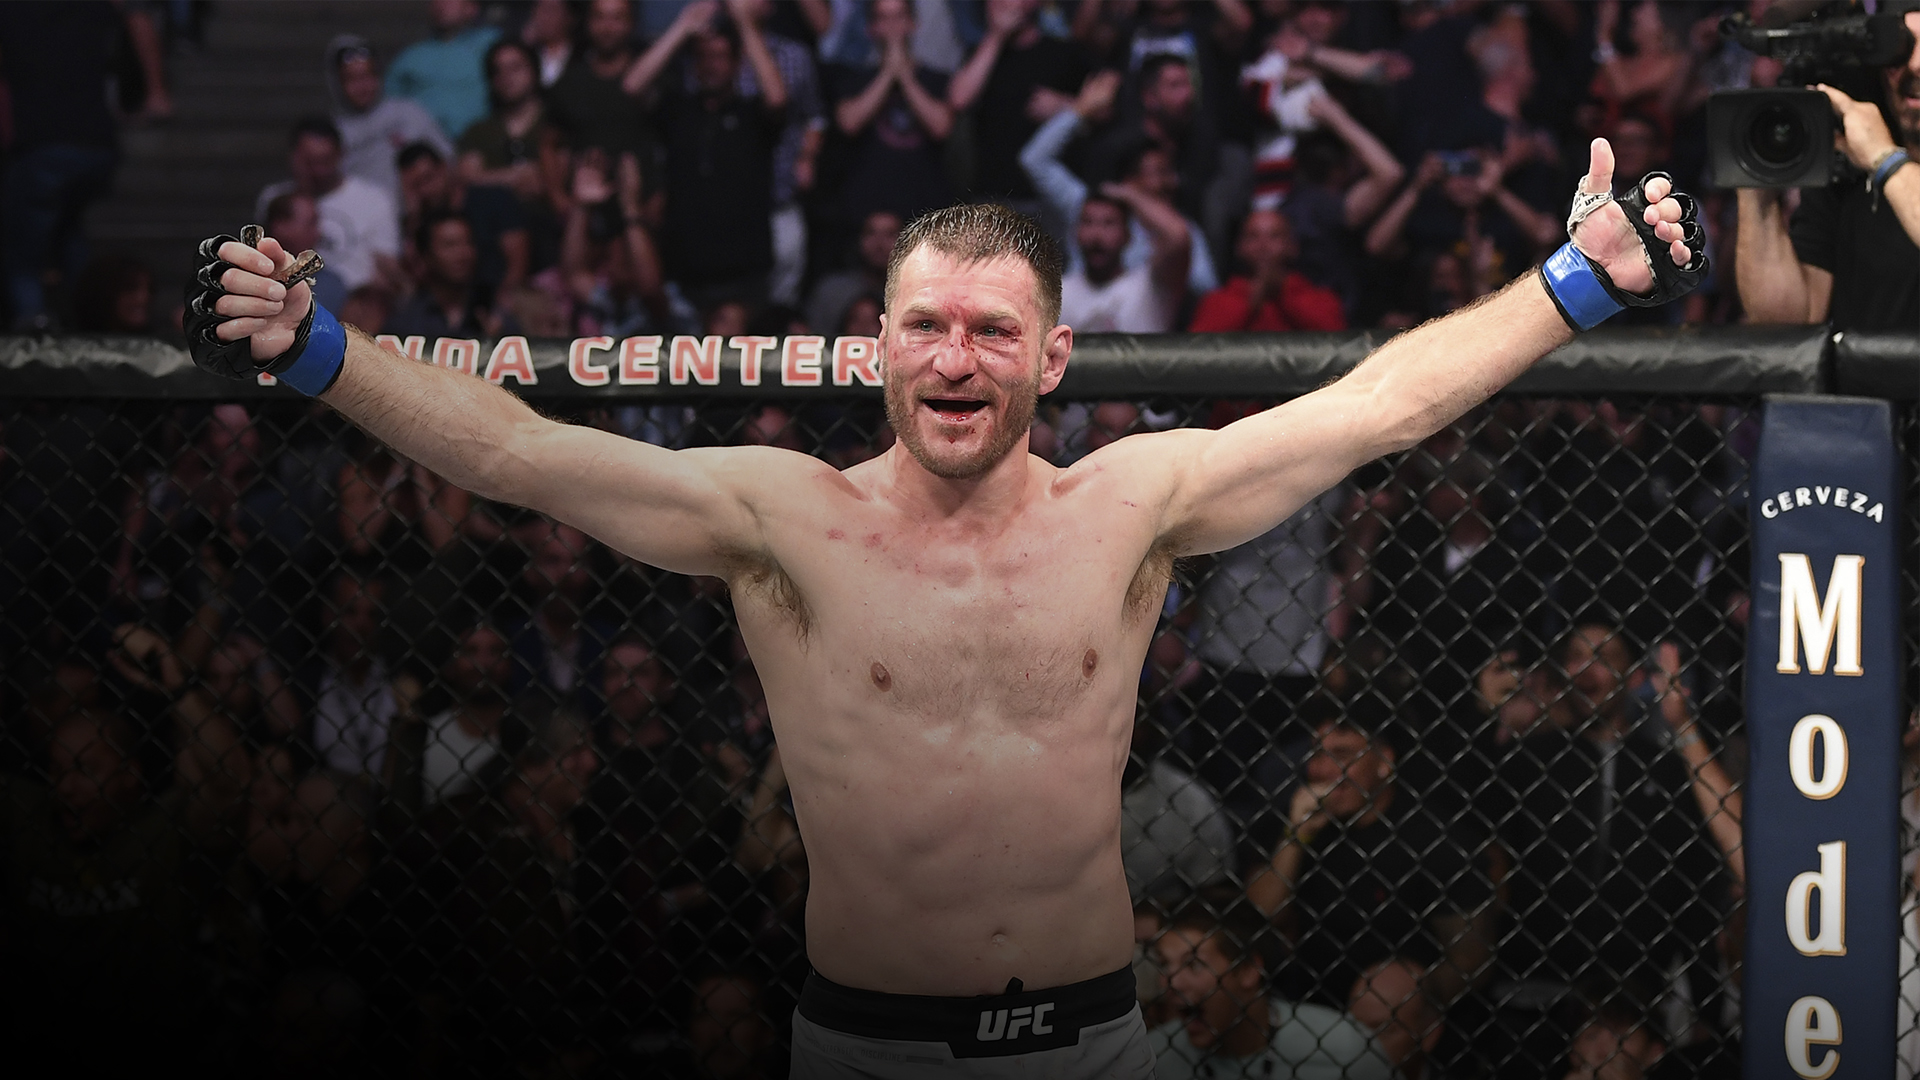 Stipe Miocic celebrates his TKO victory over Daniel Cormier in their heavyweight championship bout during the UFC 241 event at the Honda Center on August 17, 2019 in Anaheim, California. (Photo by Josh Hedges/Zuffa LLC)